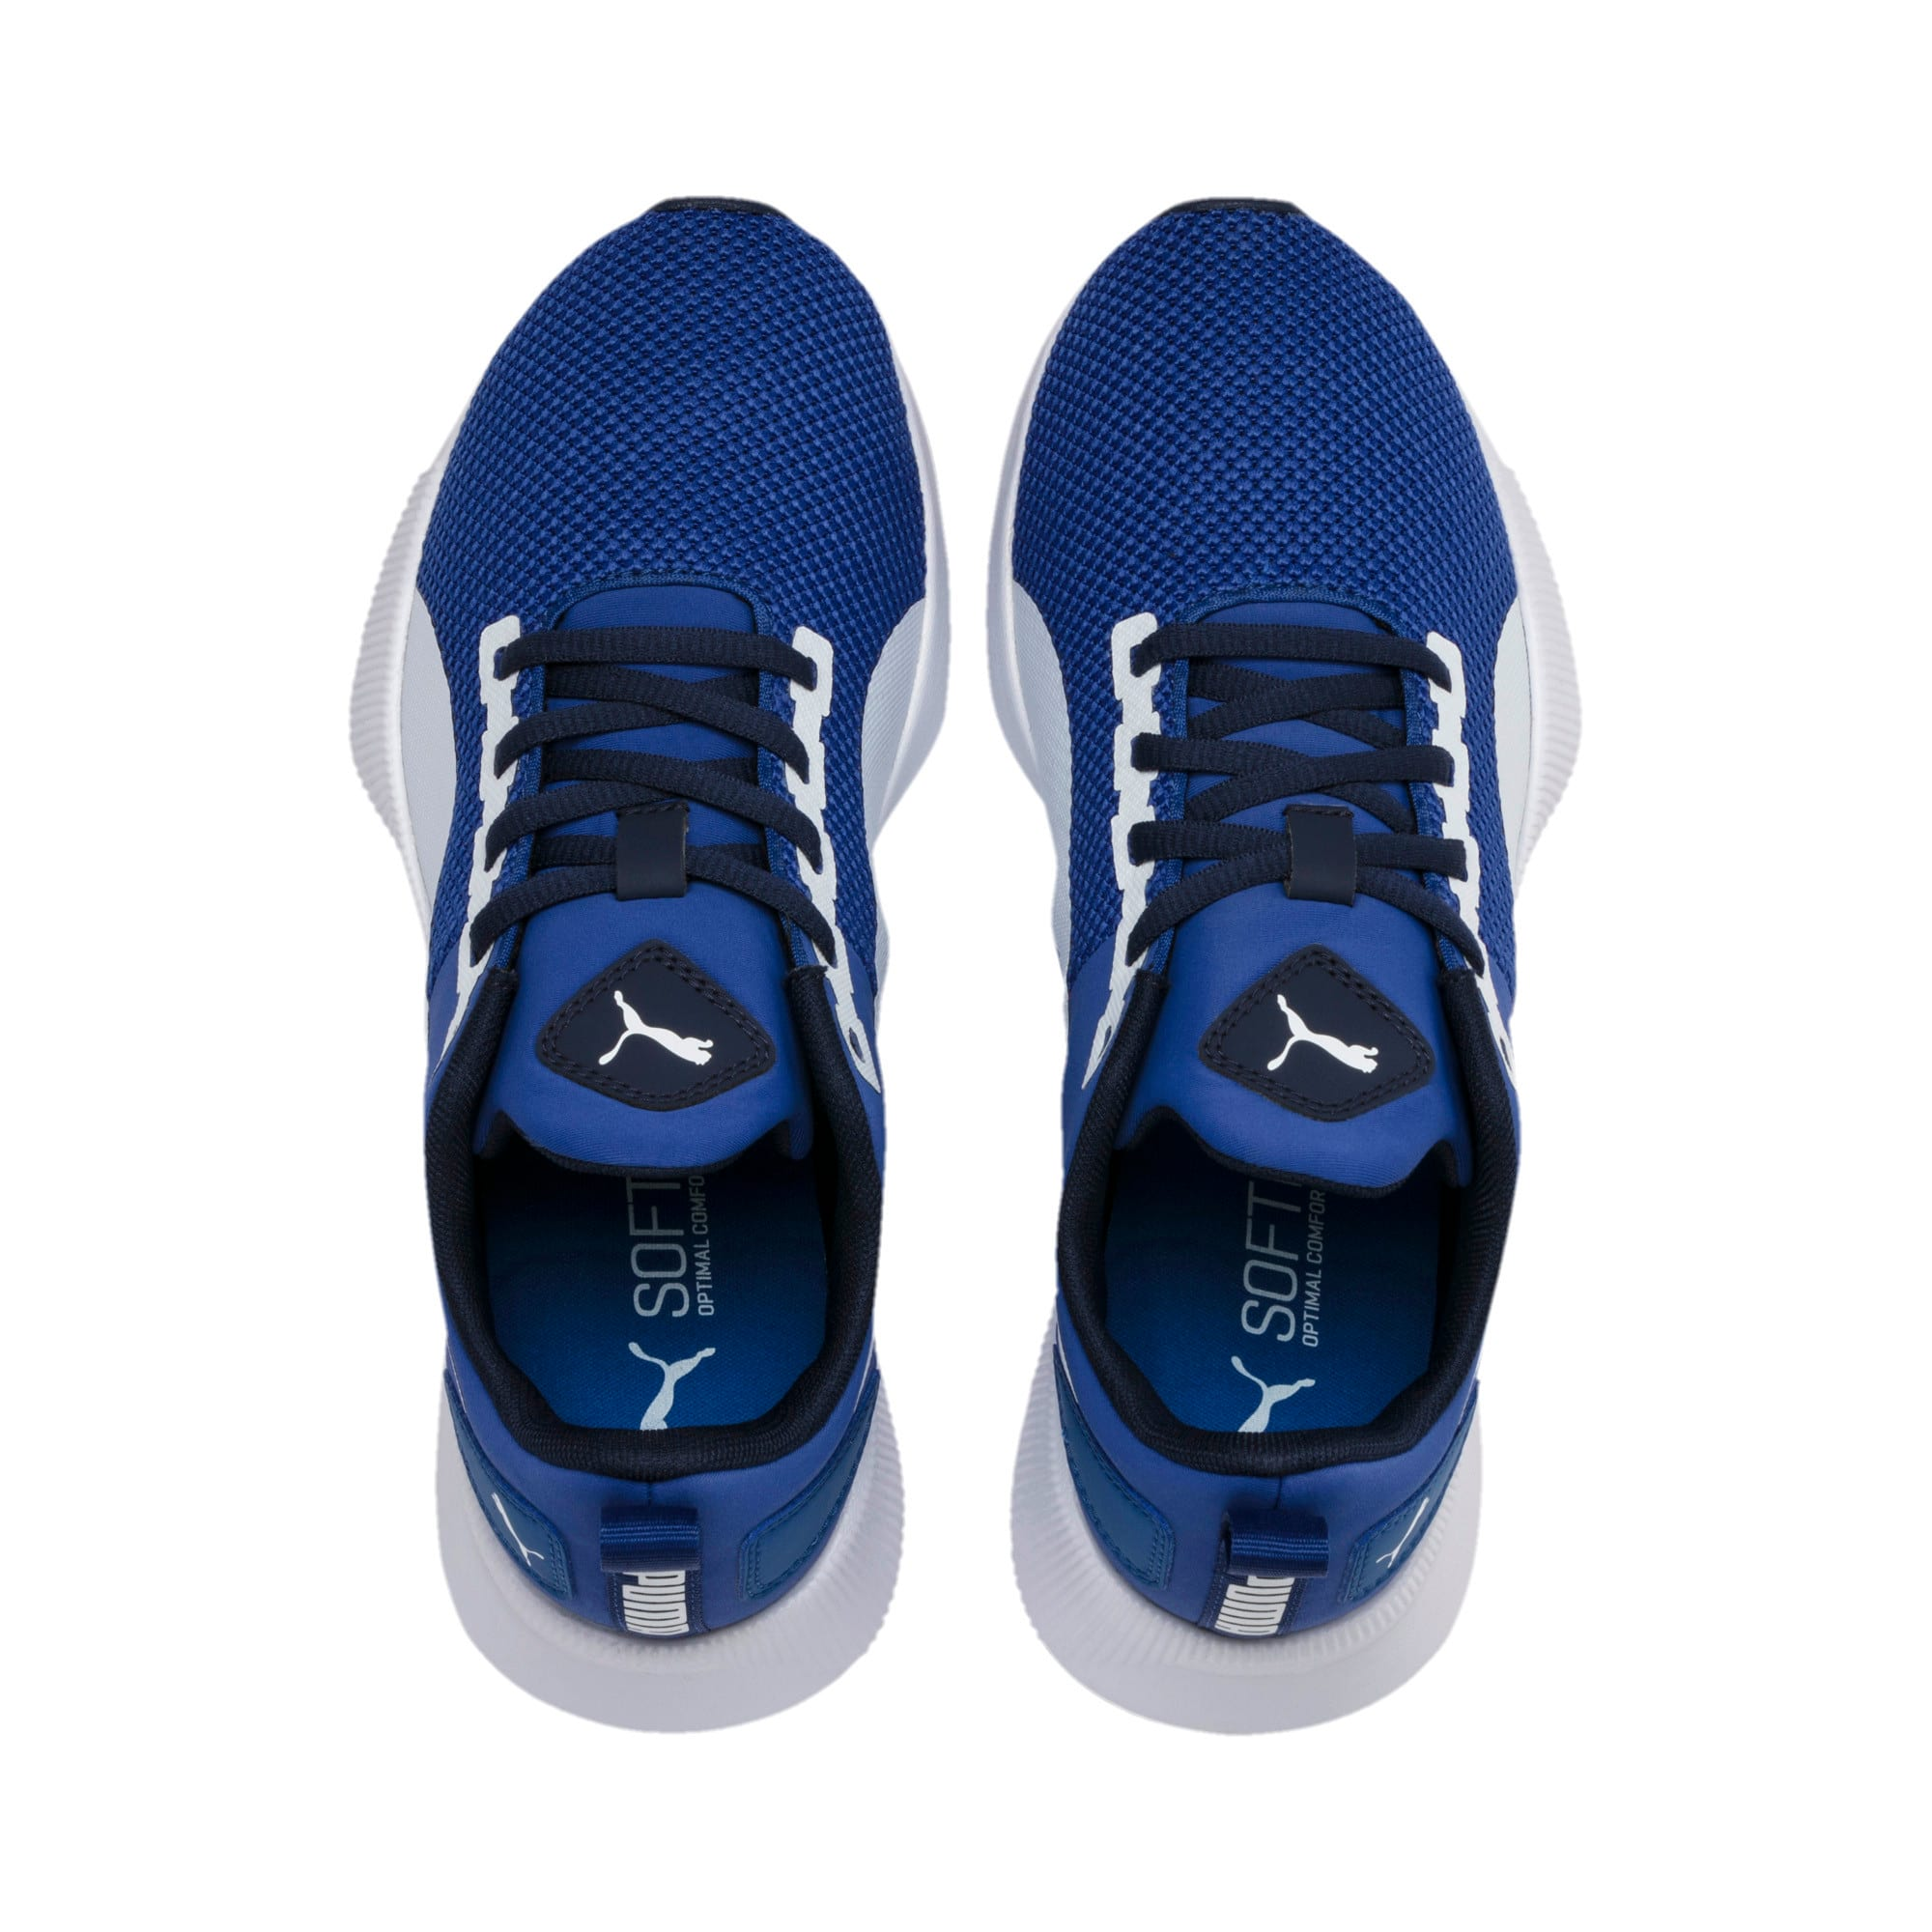 Thumbnail 2 of Flyer Runner Youth Trainers, Galaxy Blue-White-Peacoat, medium-IND